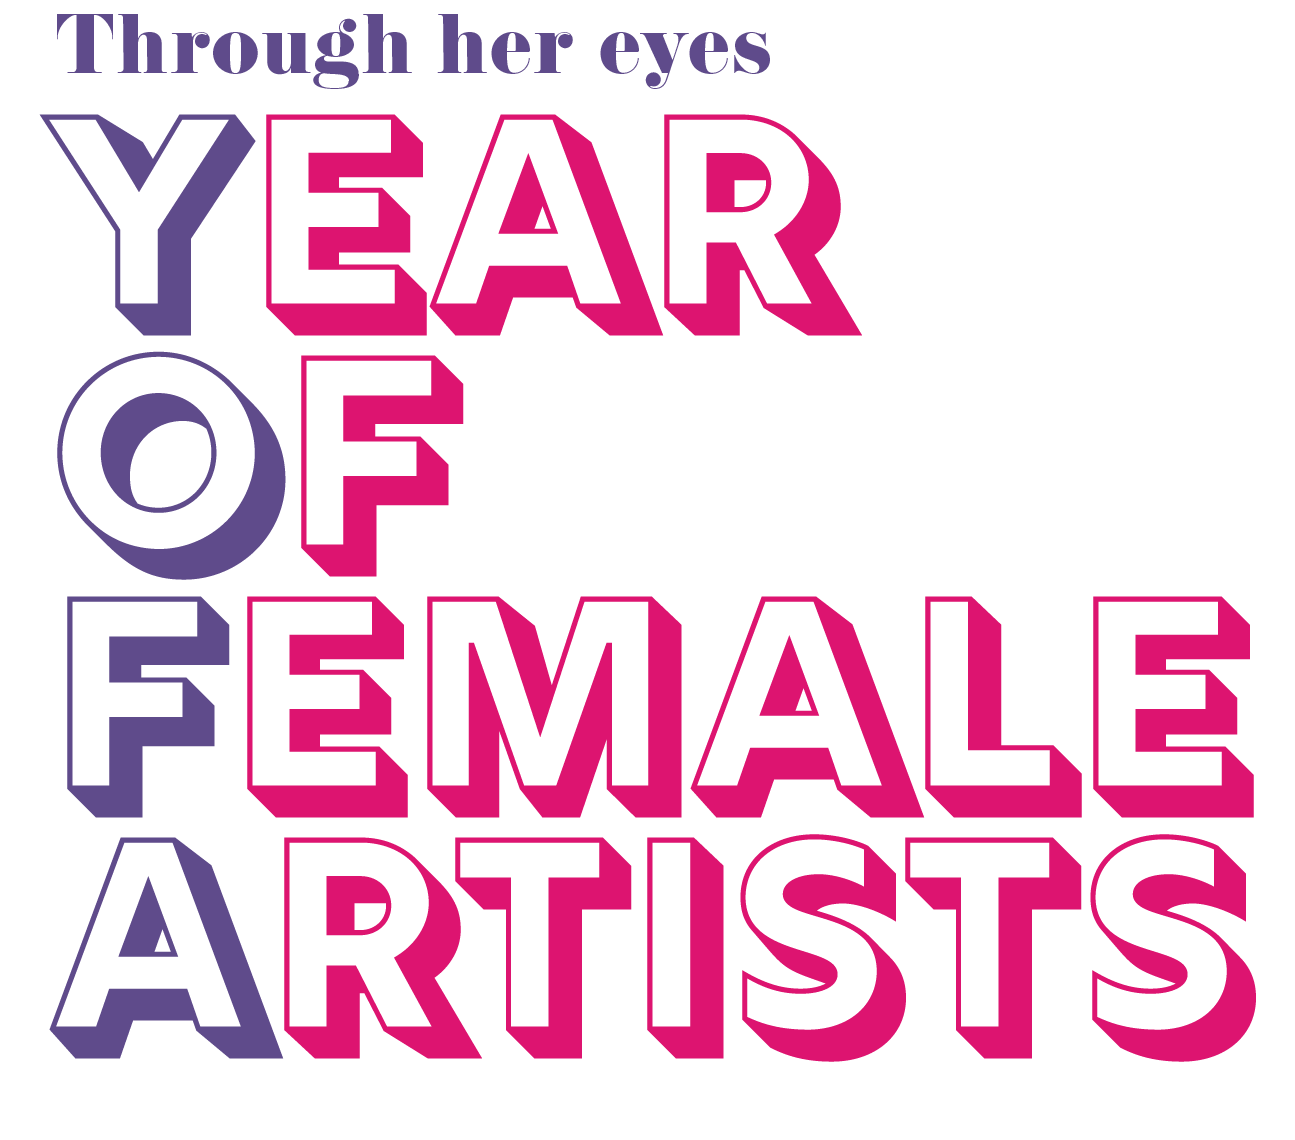 Hot pink and purple text treatment for Through Her Eyes: A Year of Female Artists